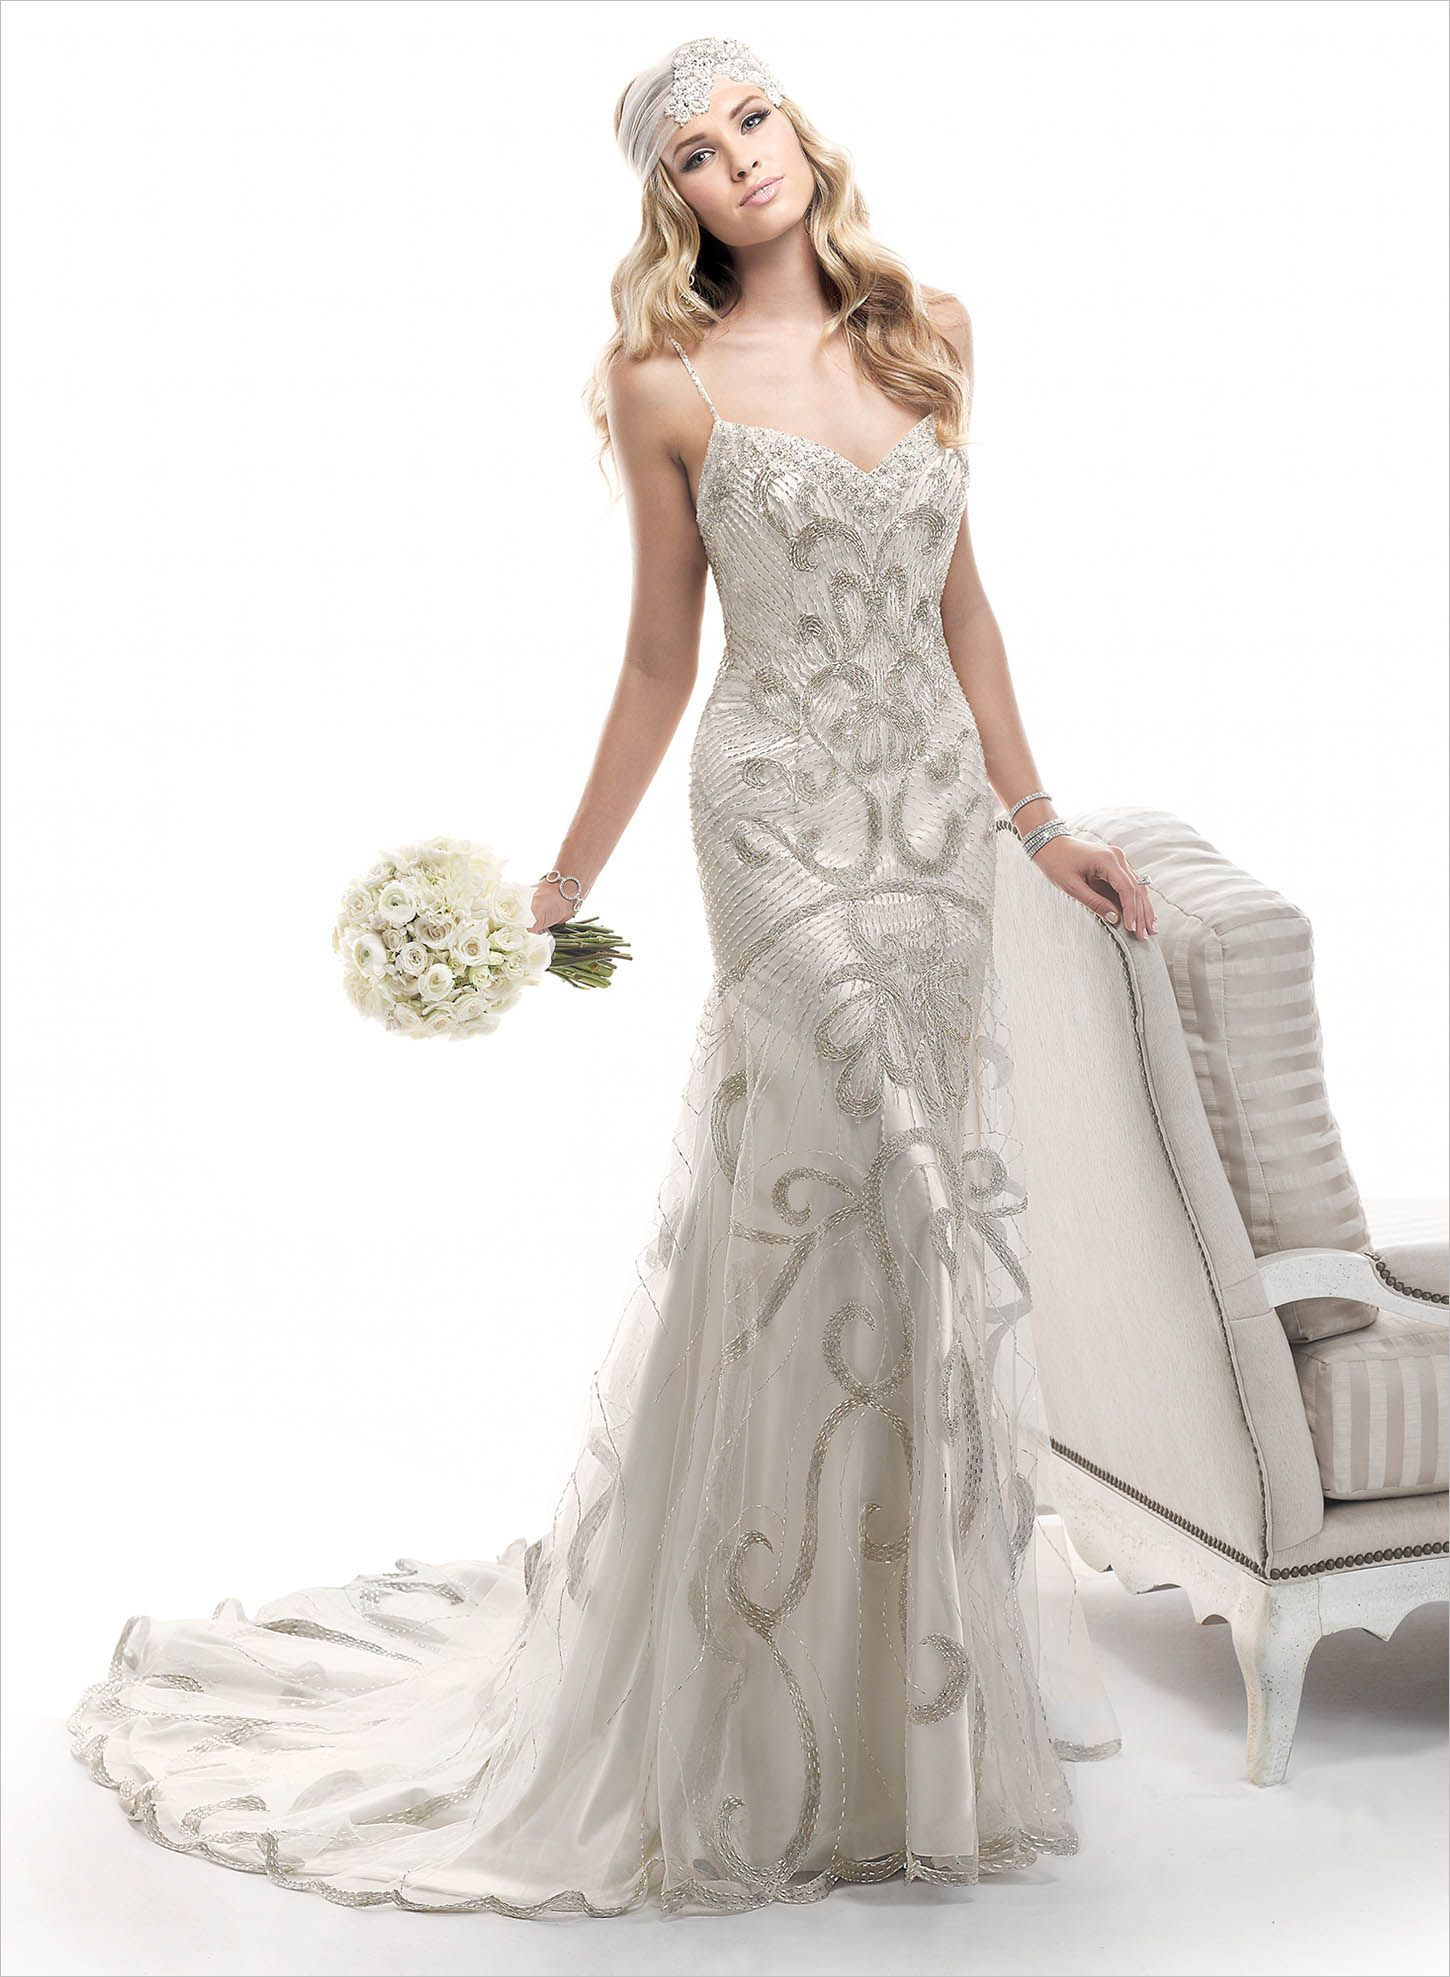 Chancey - by Maggie SotteroMetallic embroidery coupled with intricate beaded patterns create this stunning fit and flare gown, over rich Evita Satin. Complete with sweetheart neckline and finished with zipper back closure. COLORS AVAILABLE Alabaster with Silver Accent (shown), Champagne with Silver/Gold Accent